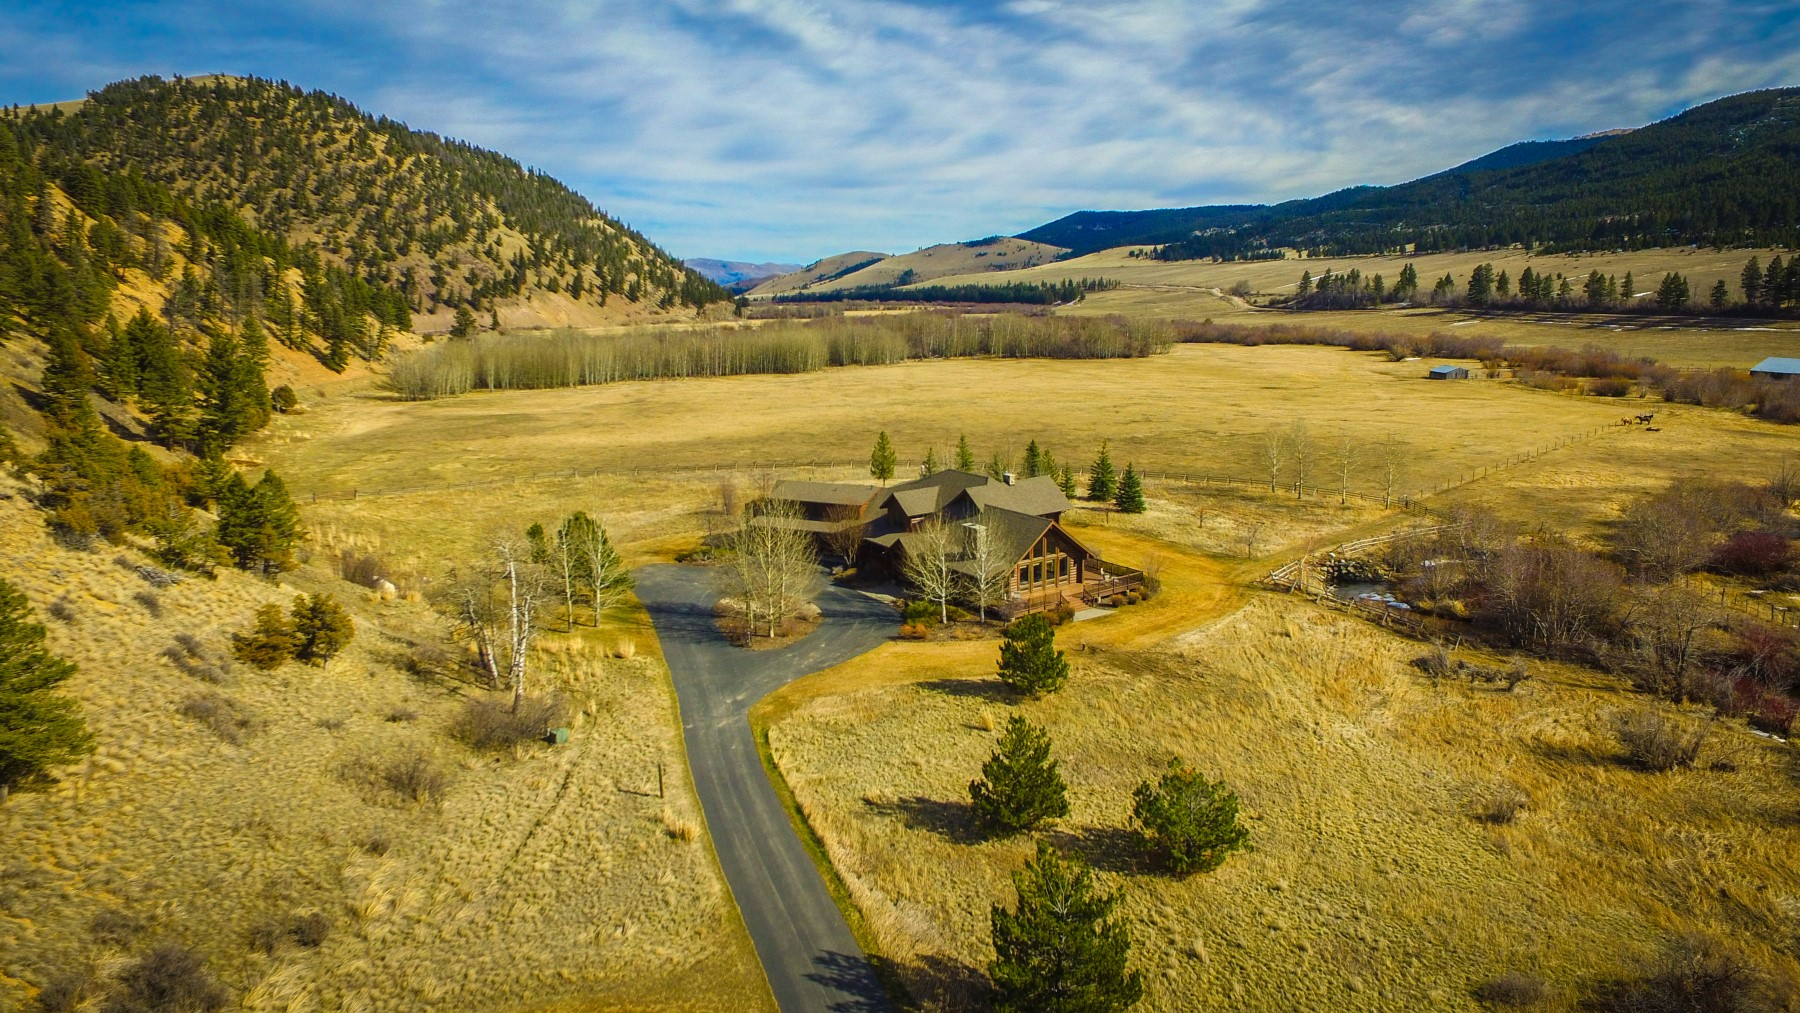 Single Family Home for Sale at 10000 Prickly Pear Road 10000 Little Prickly Pear Rd Canyon Creek, Montana, 59633 United States